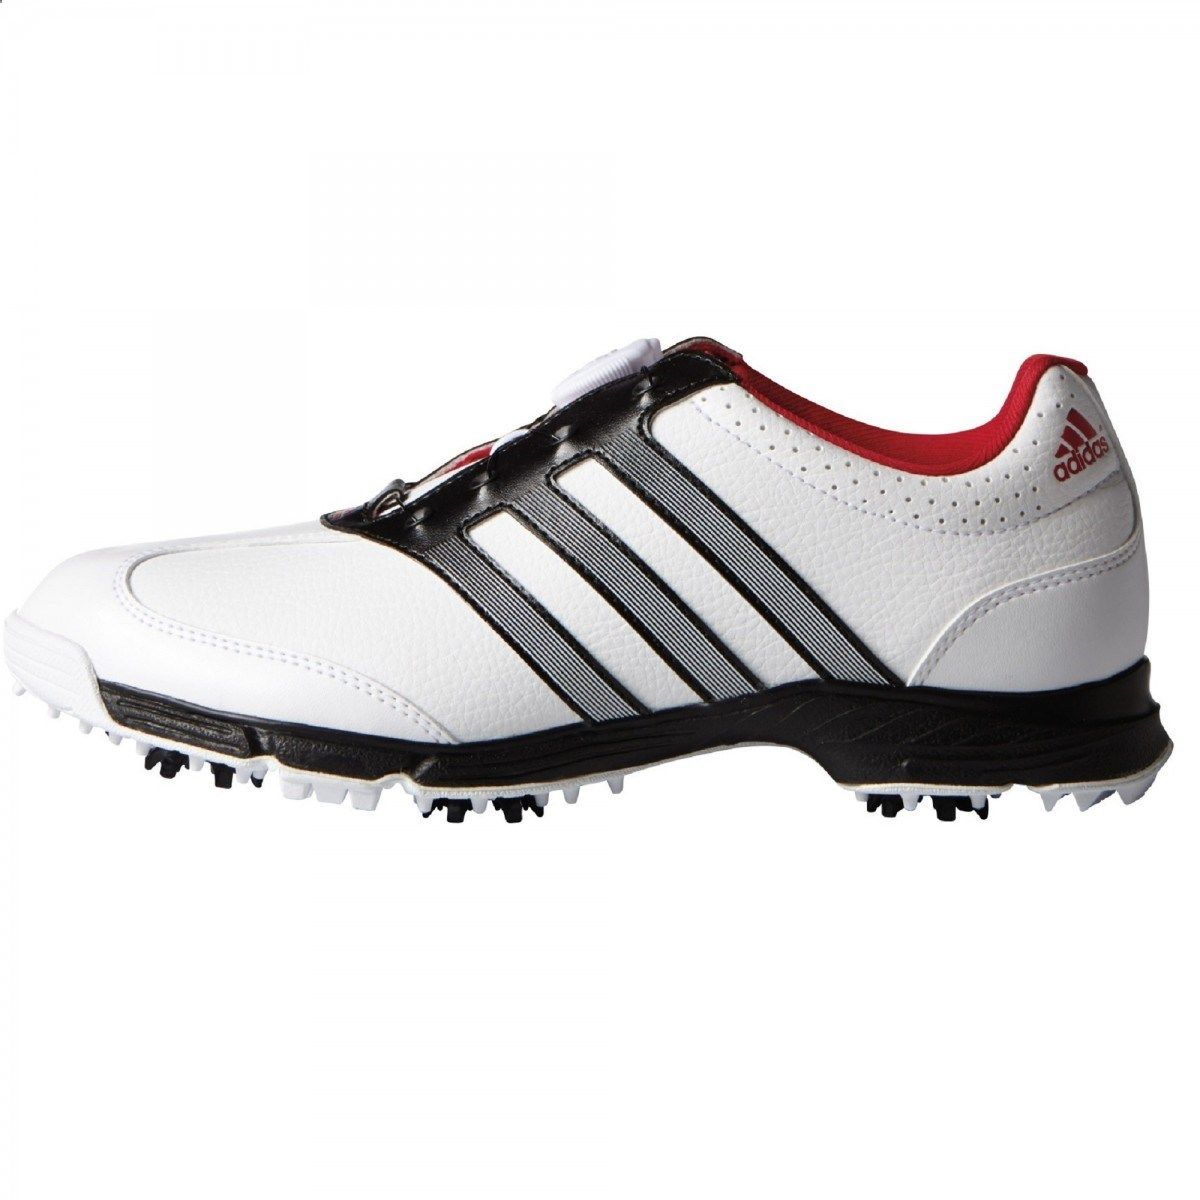 the best attitude b5185 6ef64 Golf Shoes - Adidas Womens Golf Shoe Response BOA F33311 WhiteBlack from  Golf Ski Warehouse